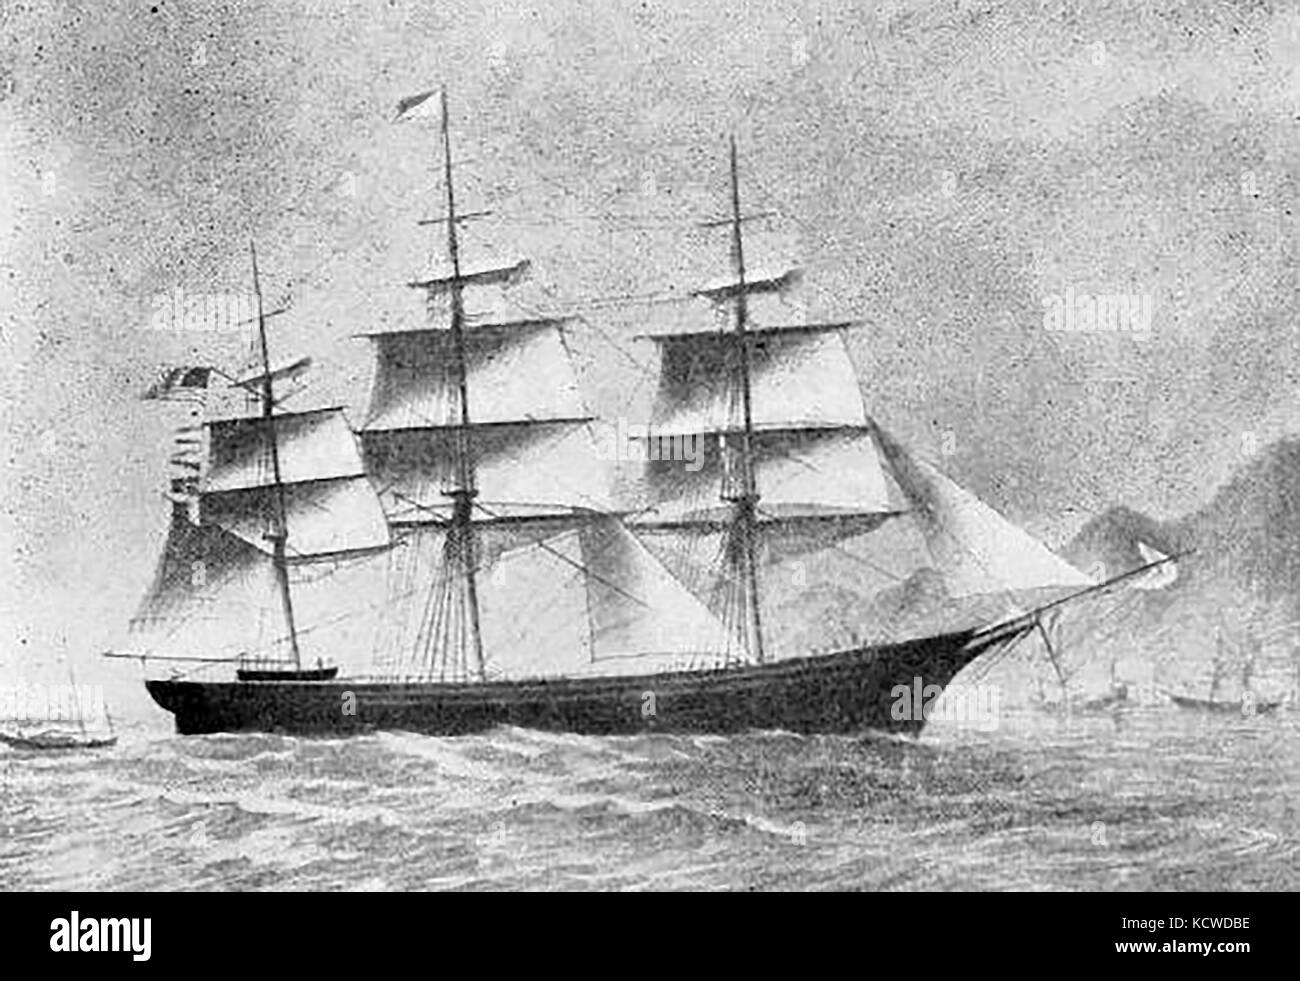 The 1062 ton US ship DERBY built in Chelsea USA in 1855 - Stock Image